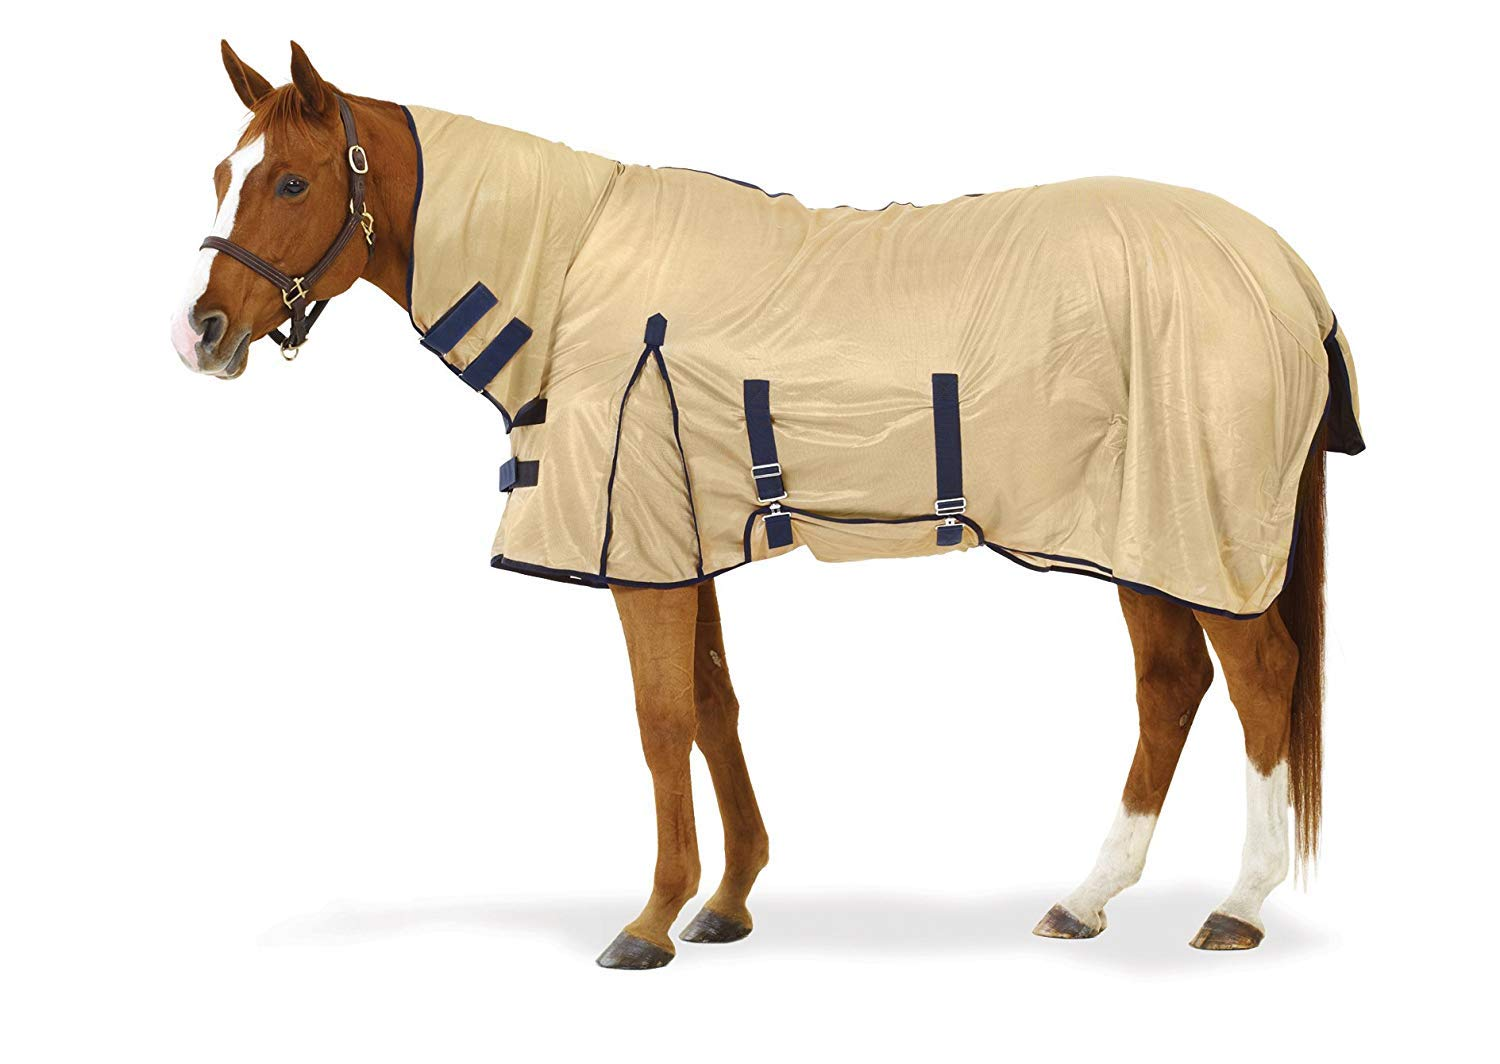 Equiessentials Softmesh Combo Fly Sheet with Belly Band and Attached Neck Cover, Tan/Navy,  78